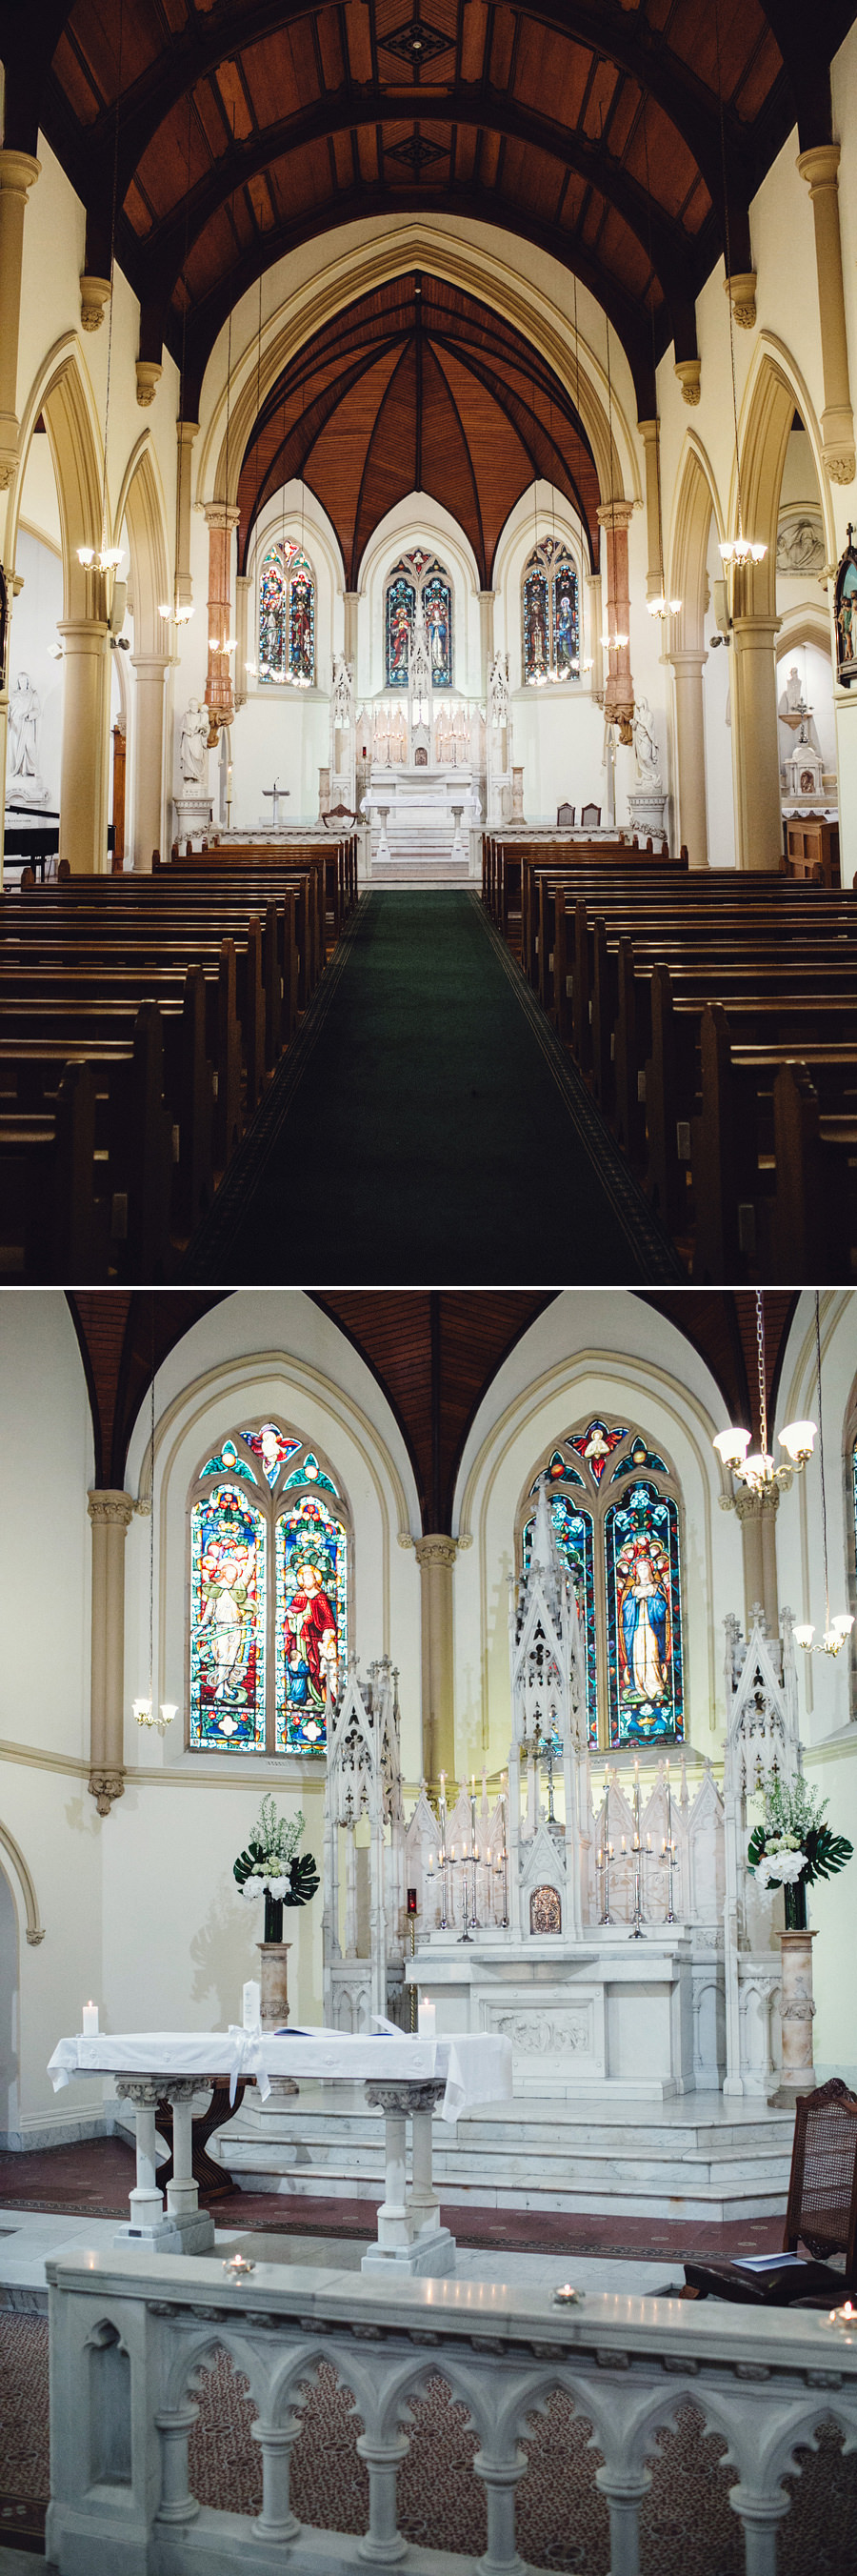 St Vincent's College Wedding Photographer: St Vincent's College Chapel